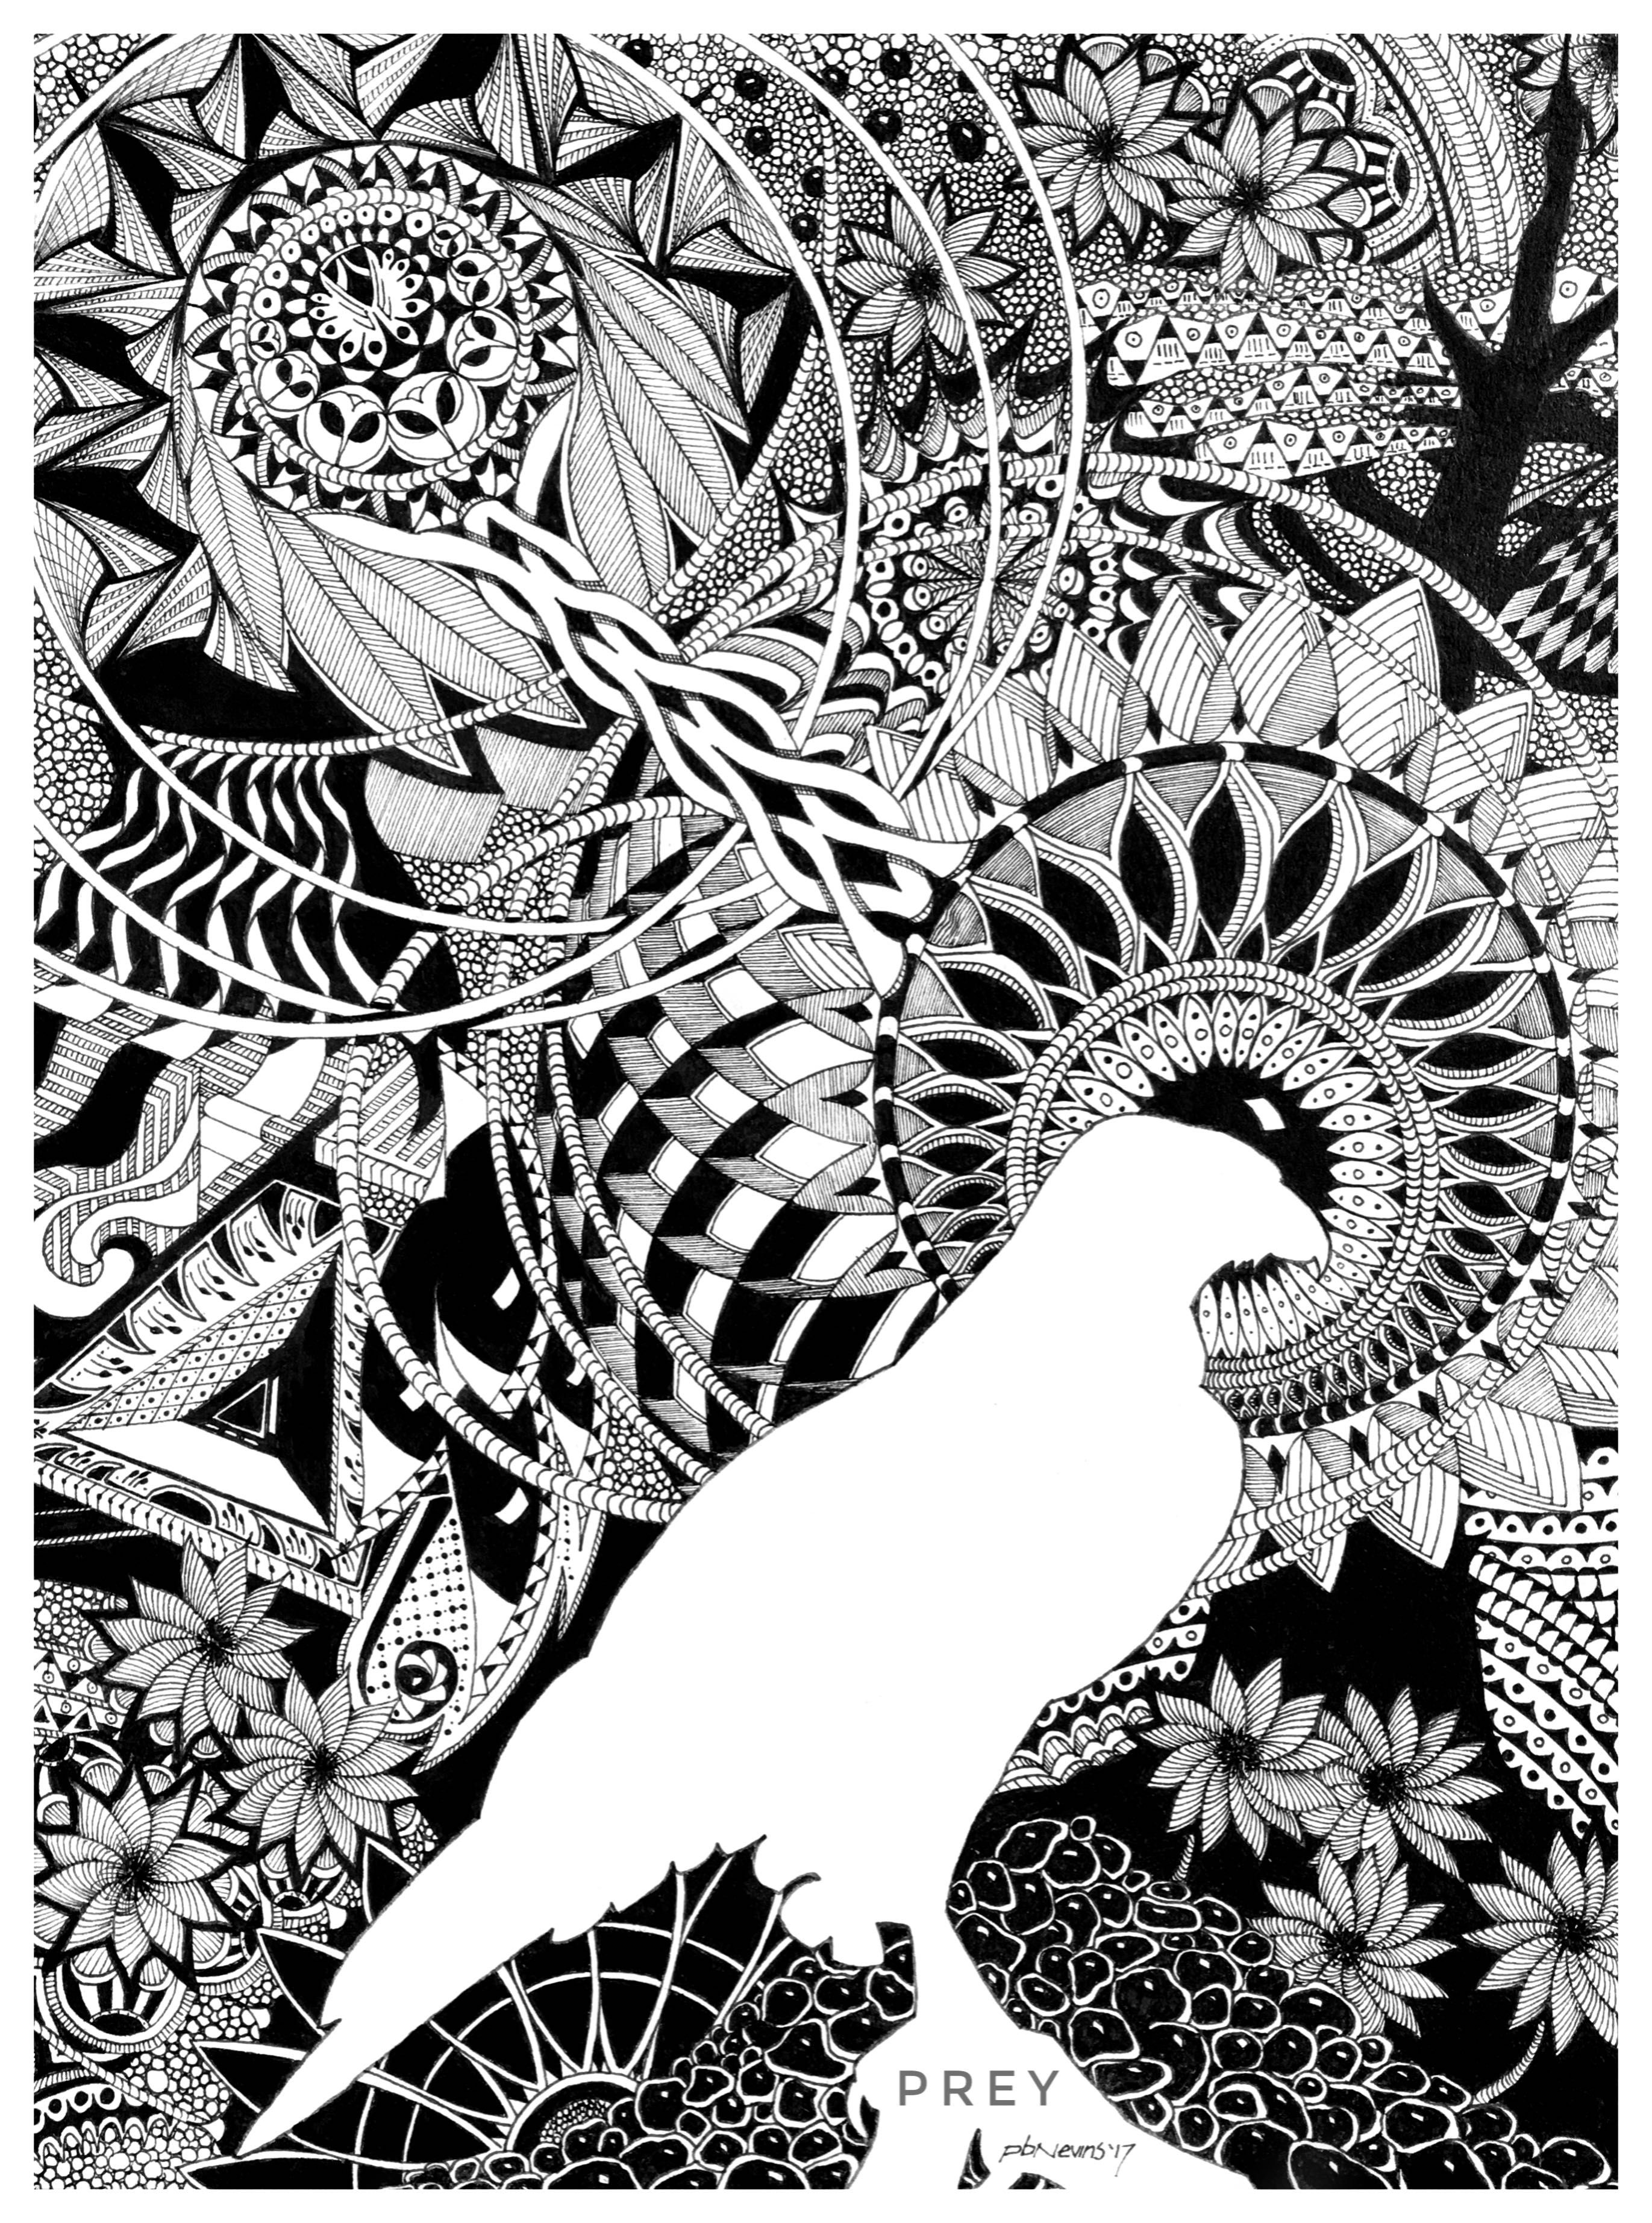 8x10 Pen And Ink Drawing In The Quot Zentangle Quot Style I Chose